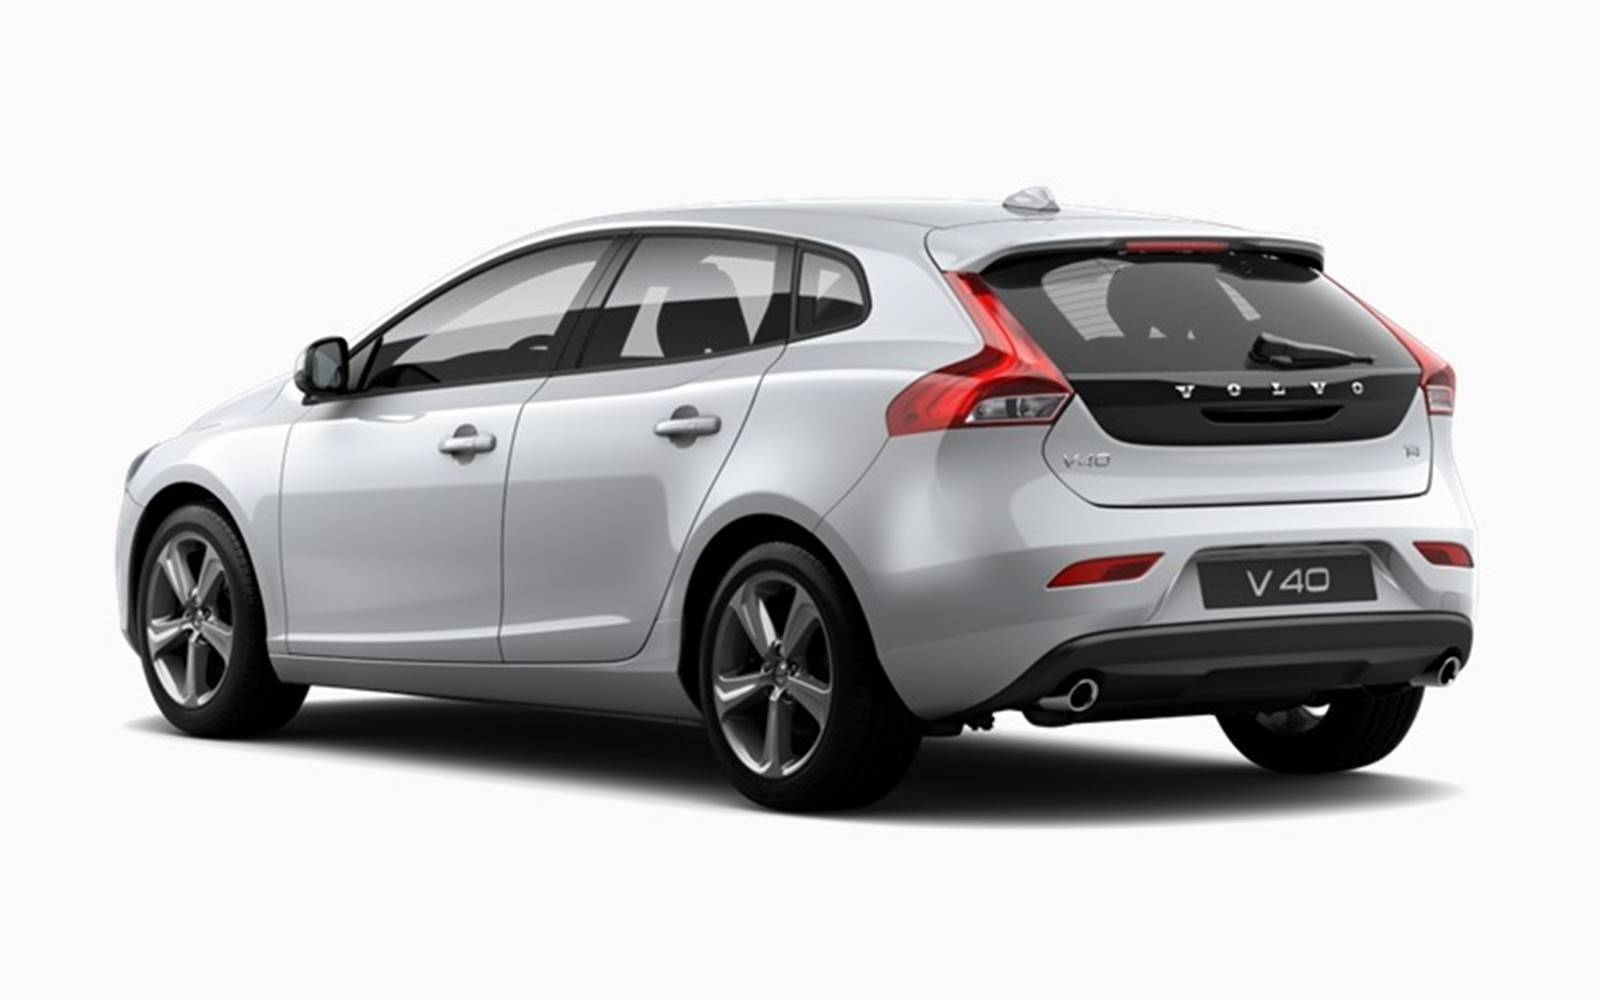 volvo v40 2017 pre os consumo e especifica es brasil car blog br. Black Bedroom Furniture Sets. Home Design Ideas